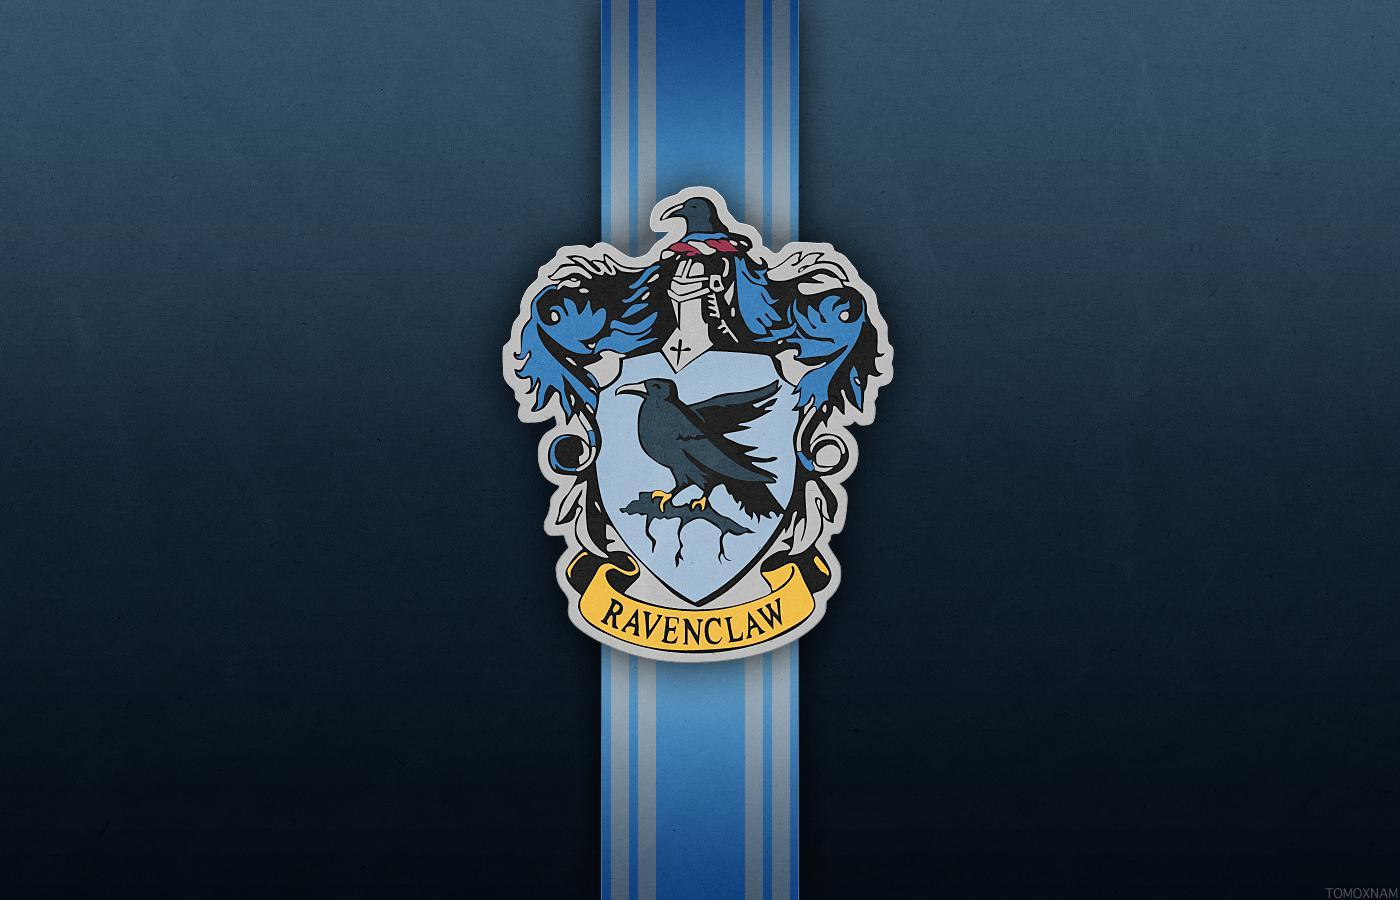 Free Download Ravenclaw Wallpapers 1400x900 For Your Desktop